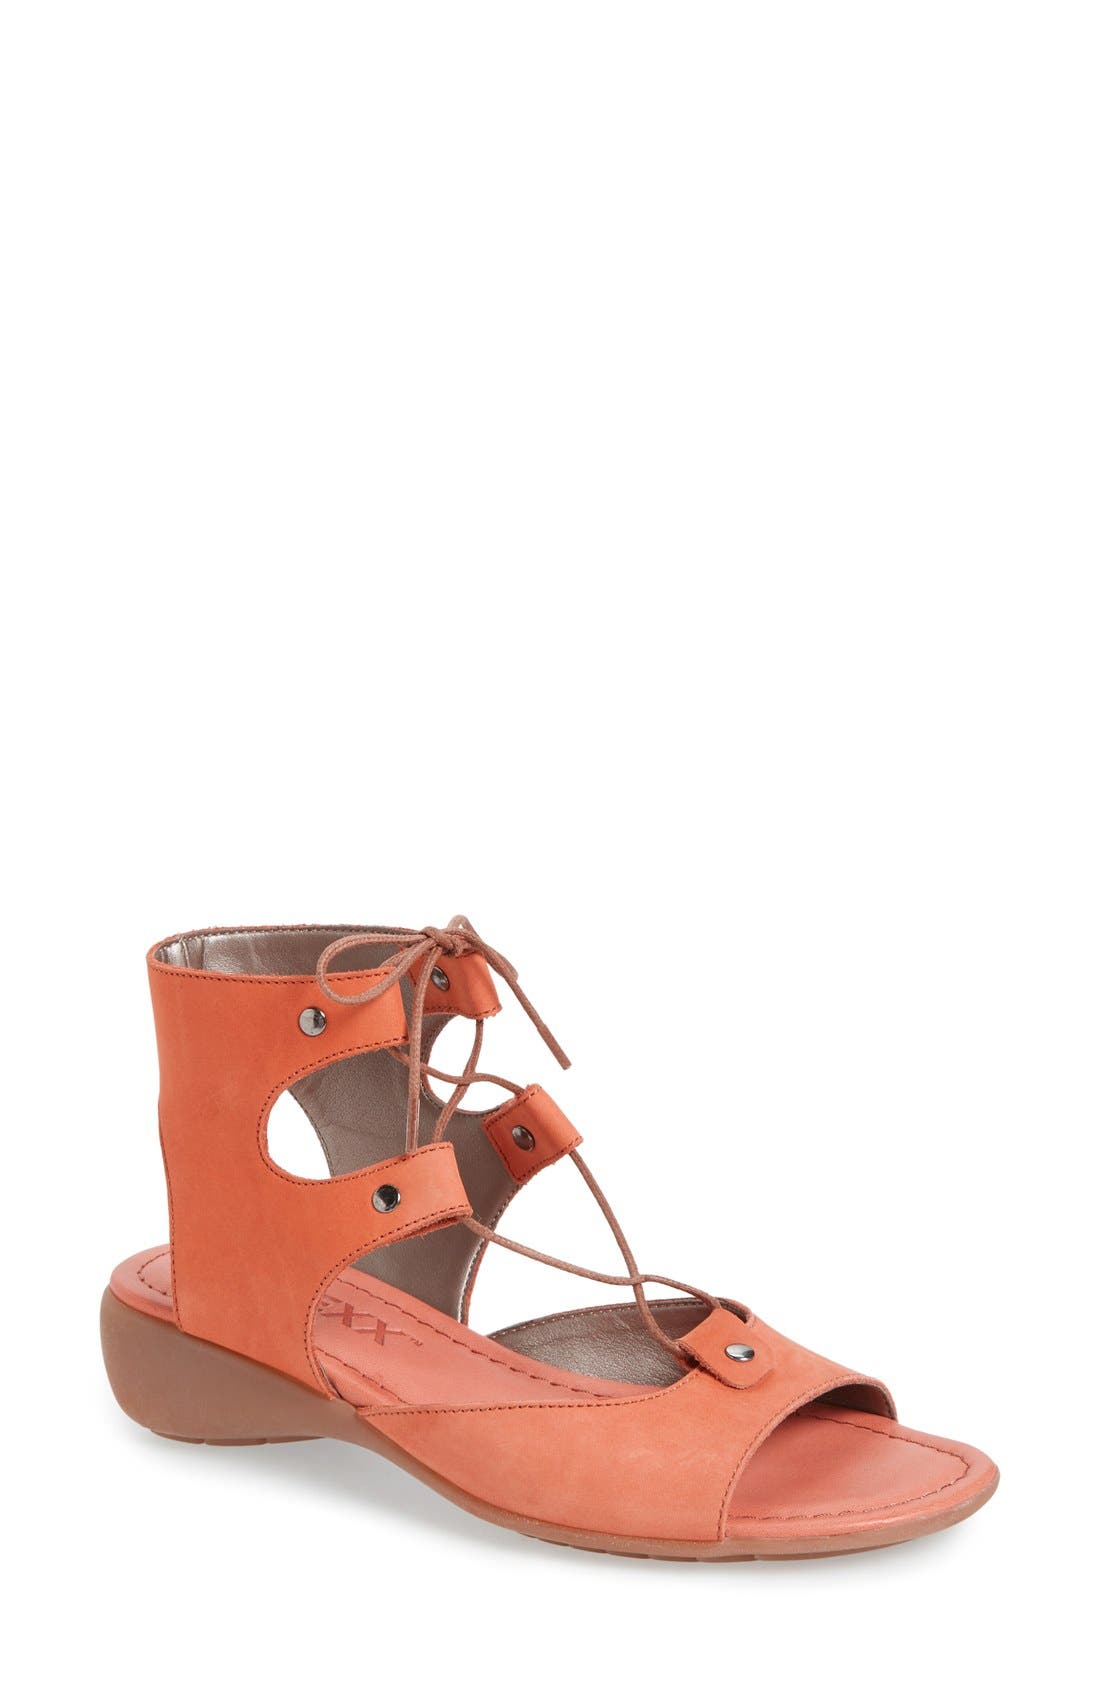 Alternate Image 1 Selected - The FLEXX Lace-Up Gladiator Sandal (Women)